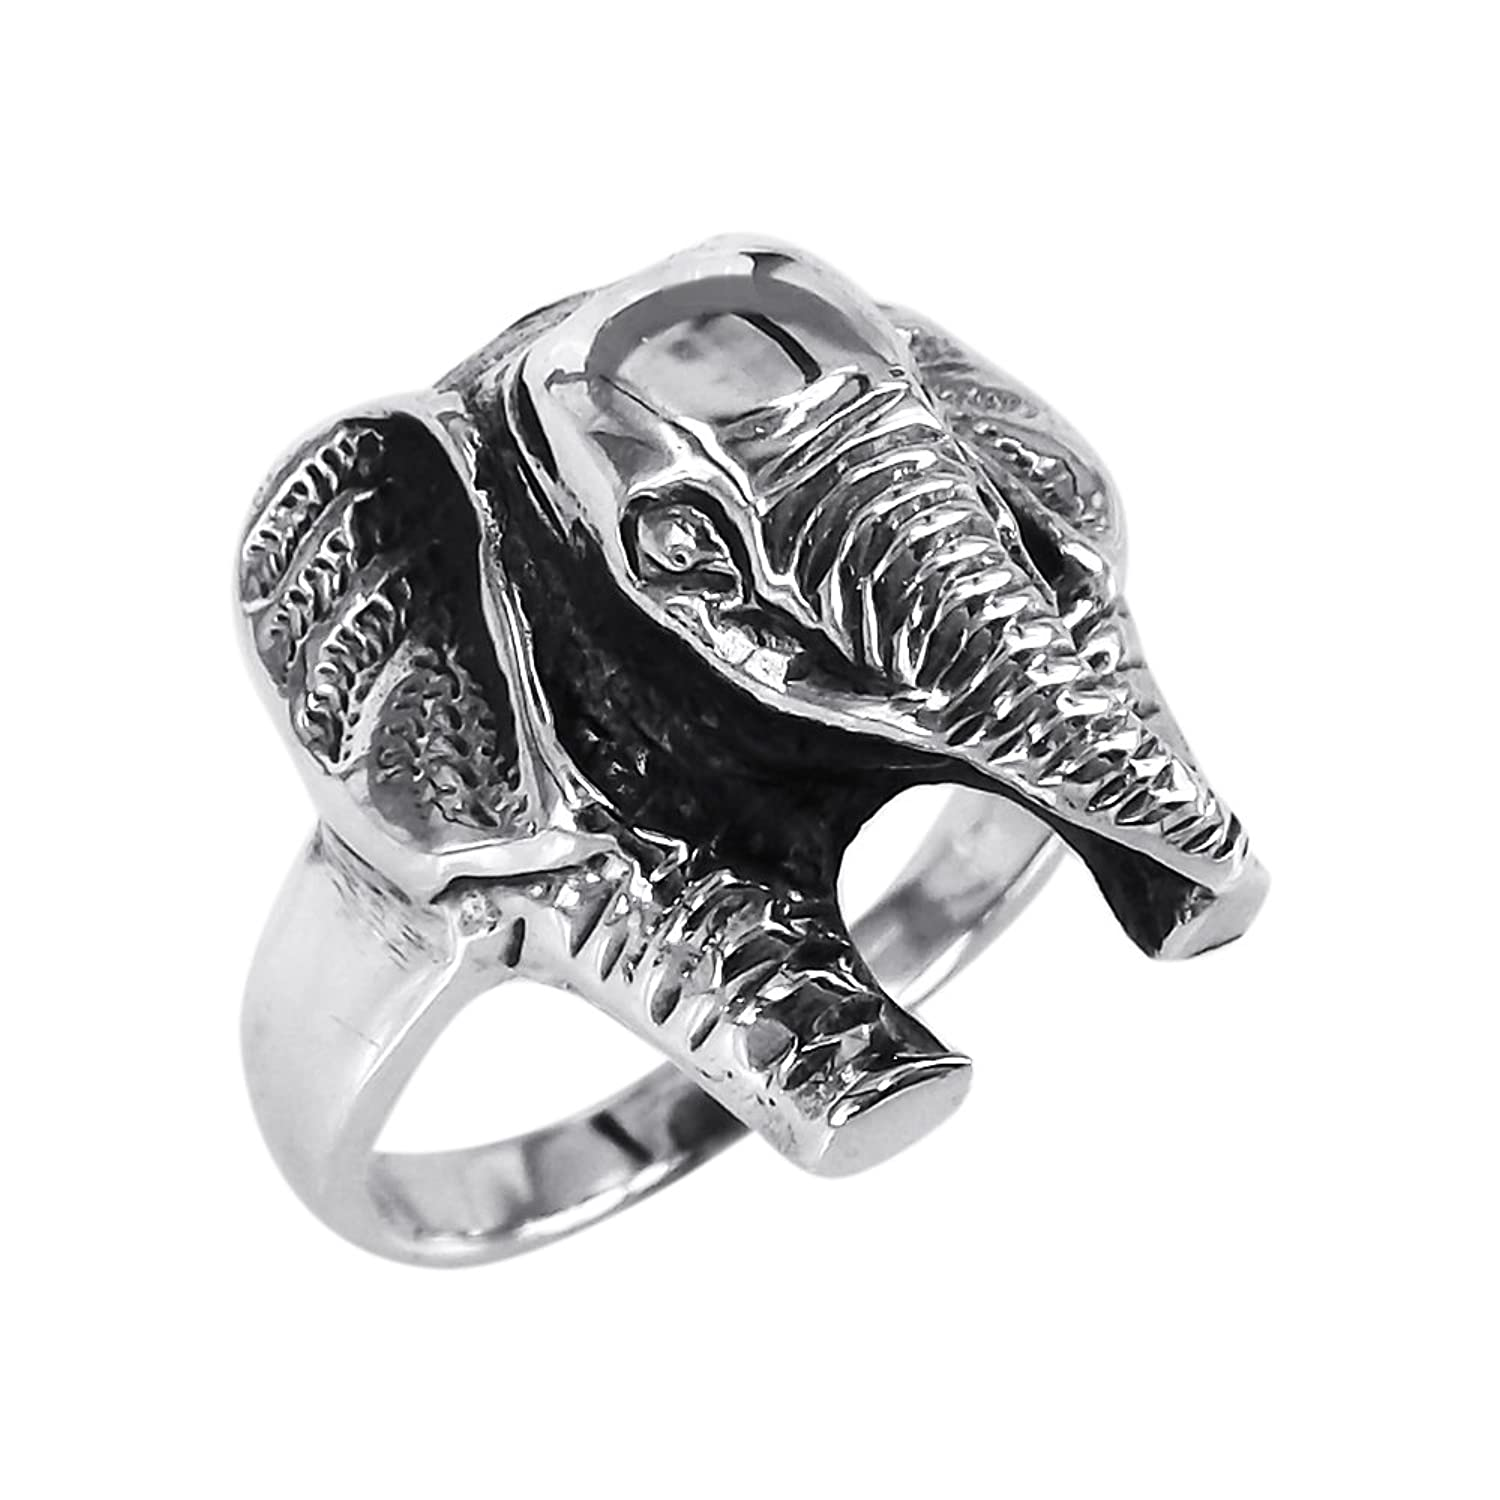 engagement ring nunu little jewellery silver img rings sterling elephant elepant products